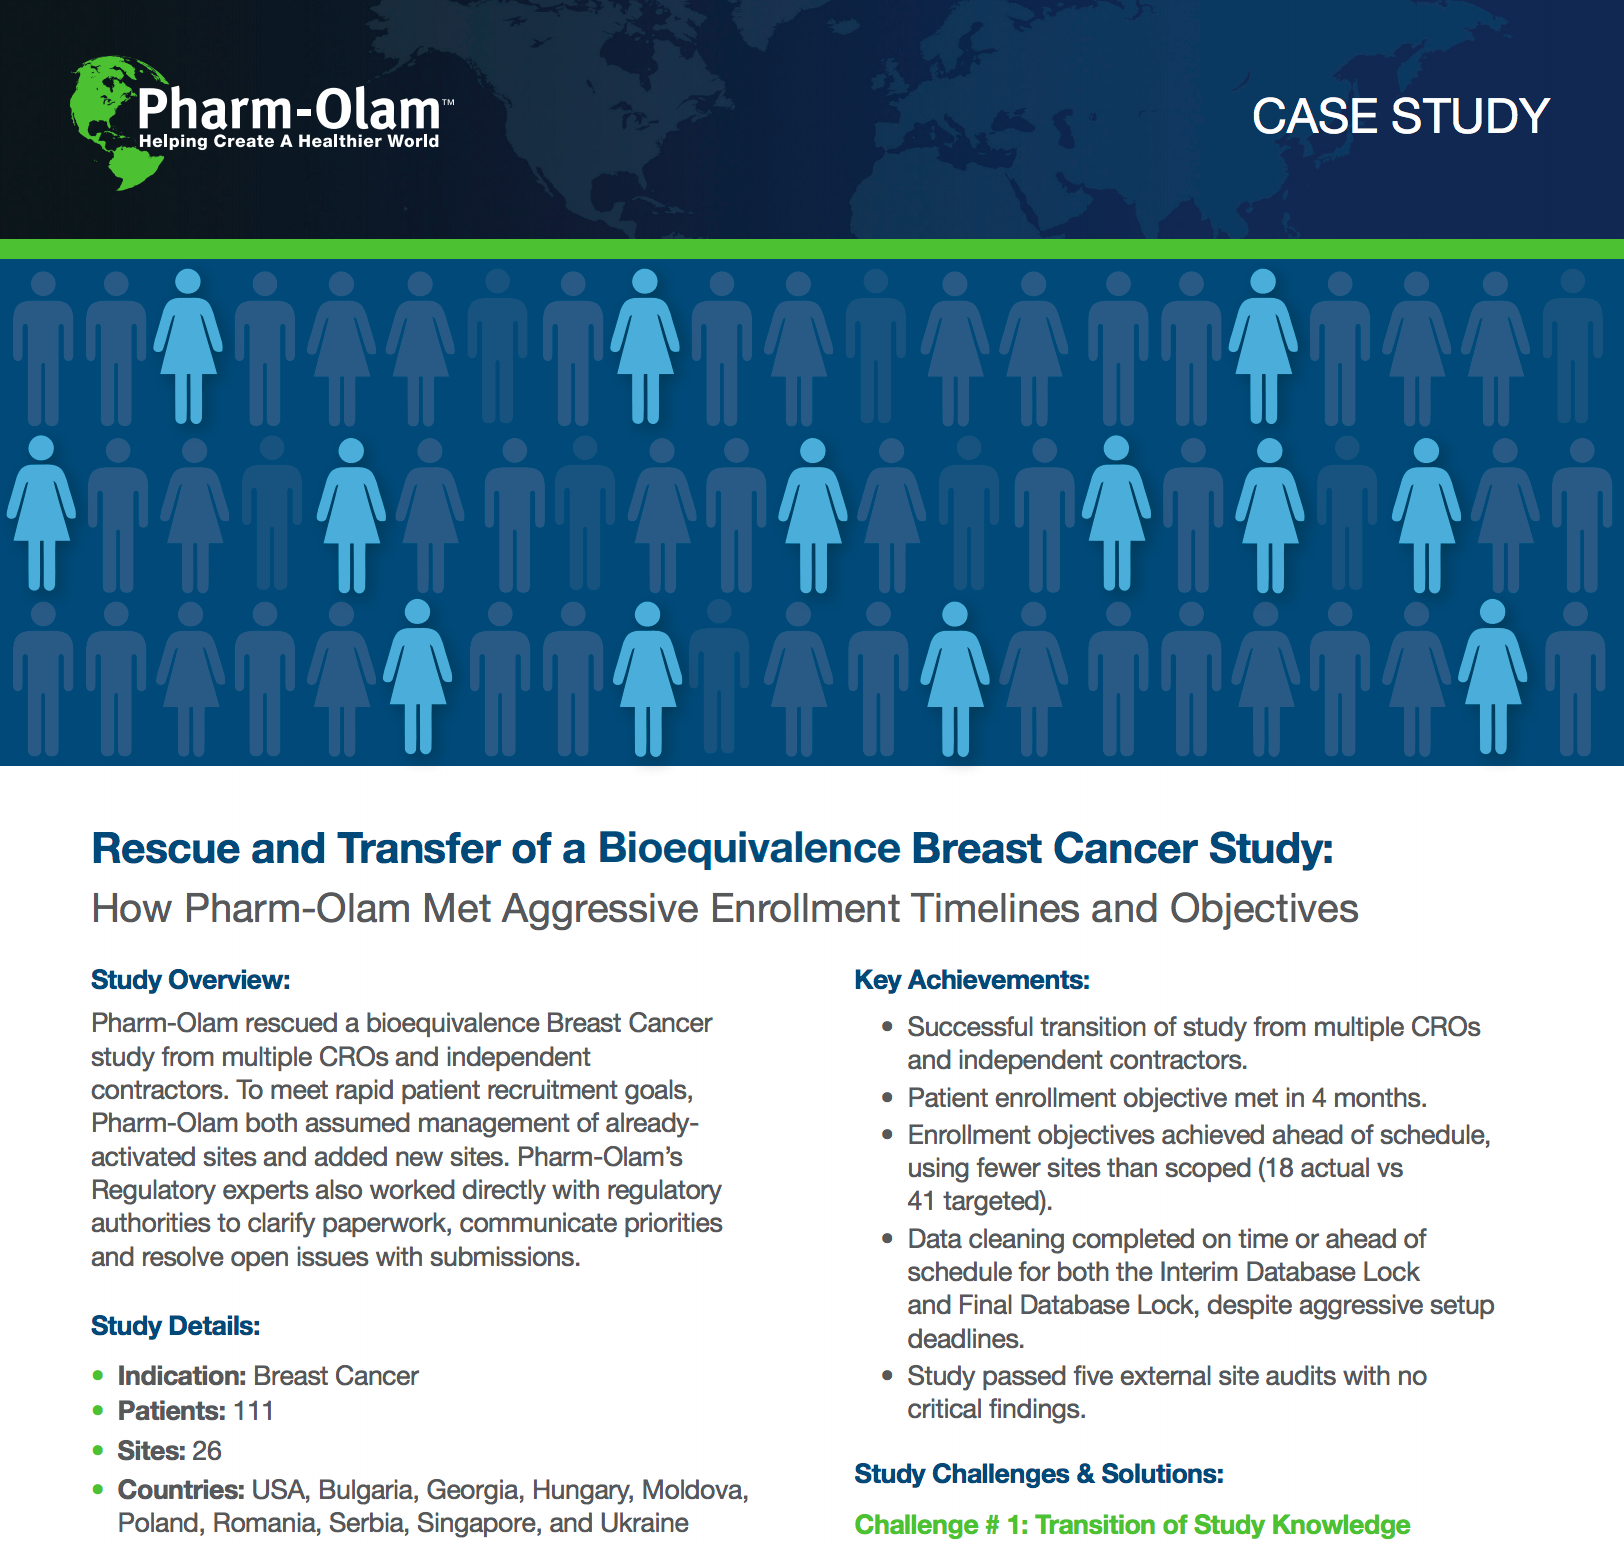 Rescue and Transfer of a Bioequivalence Breast Cancer Study